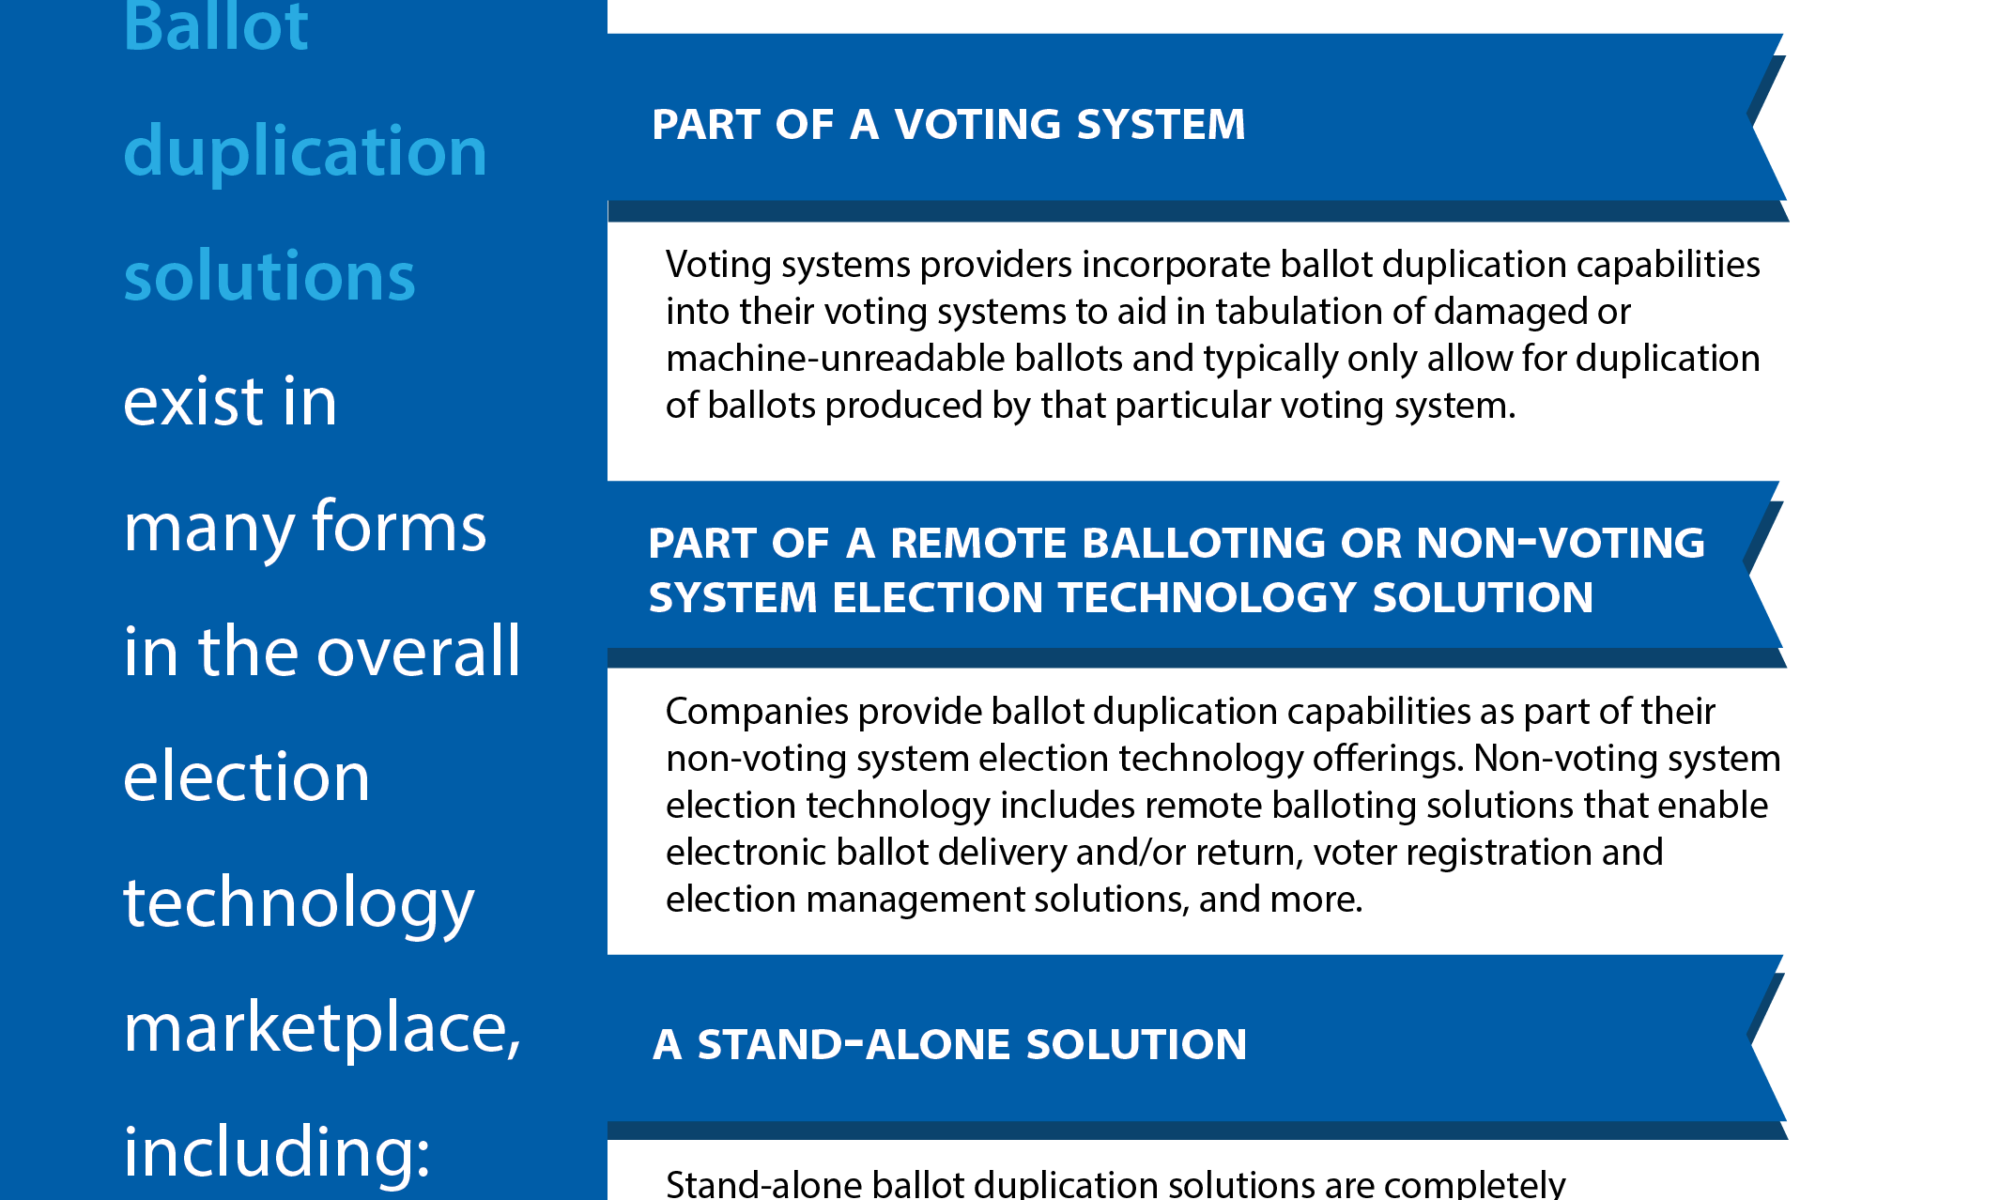 Types of ballot duplication technology described in text